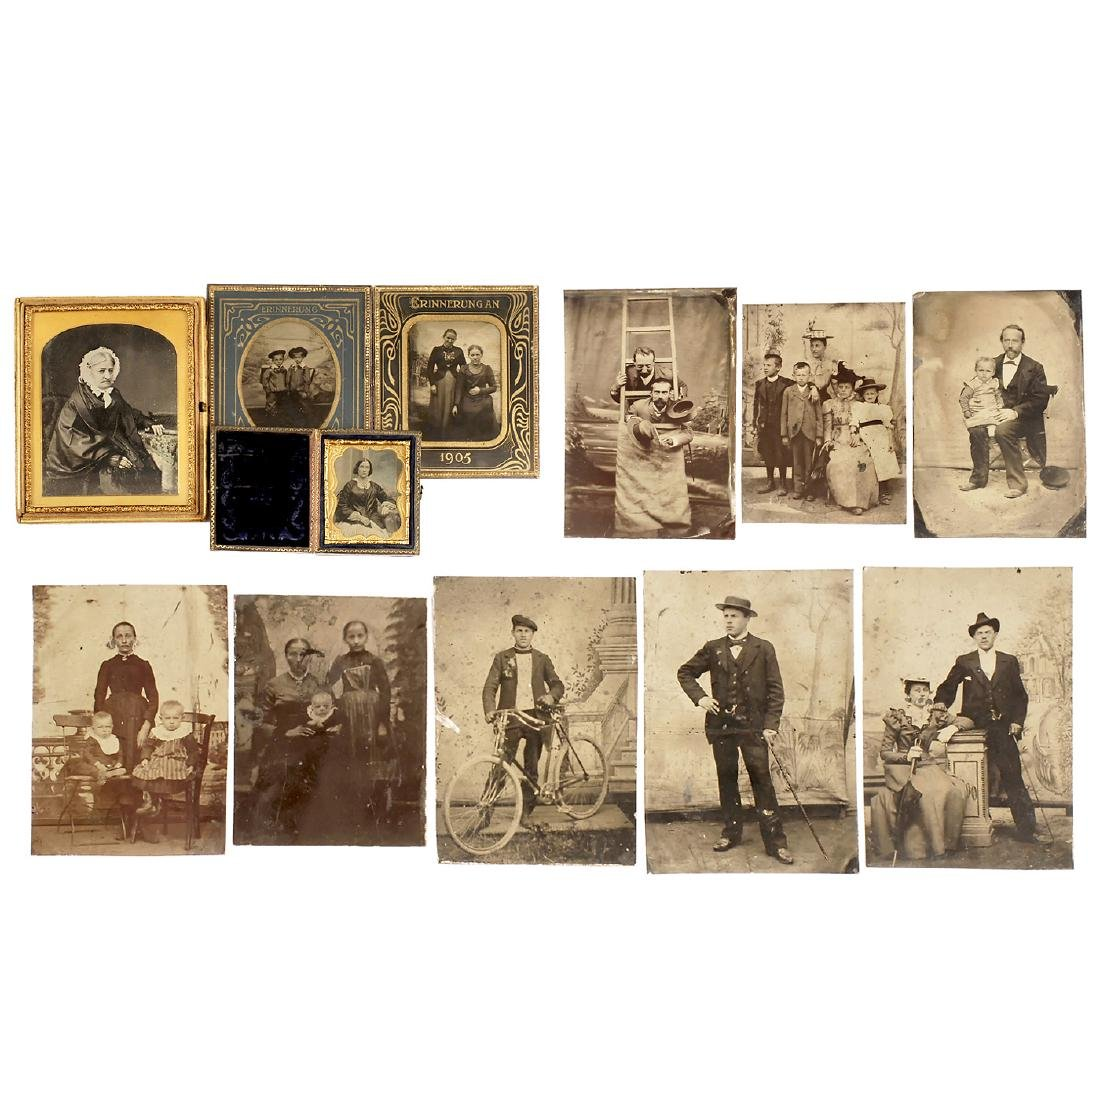 3 Ambrotypes and 10 Tintypes, 1860-1905